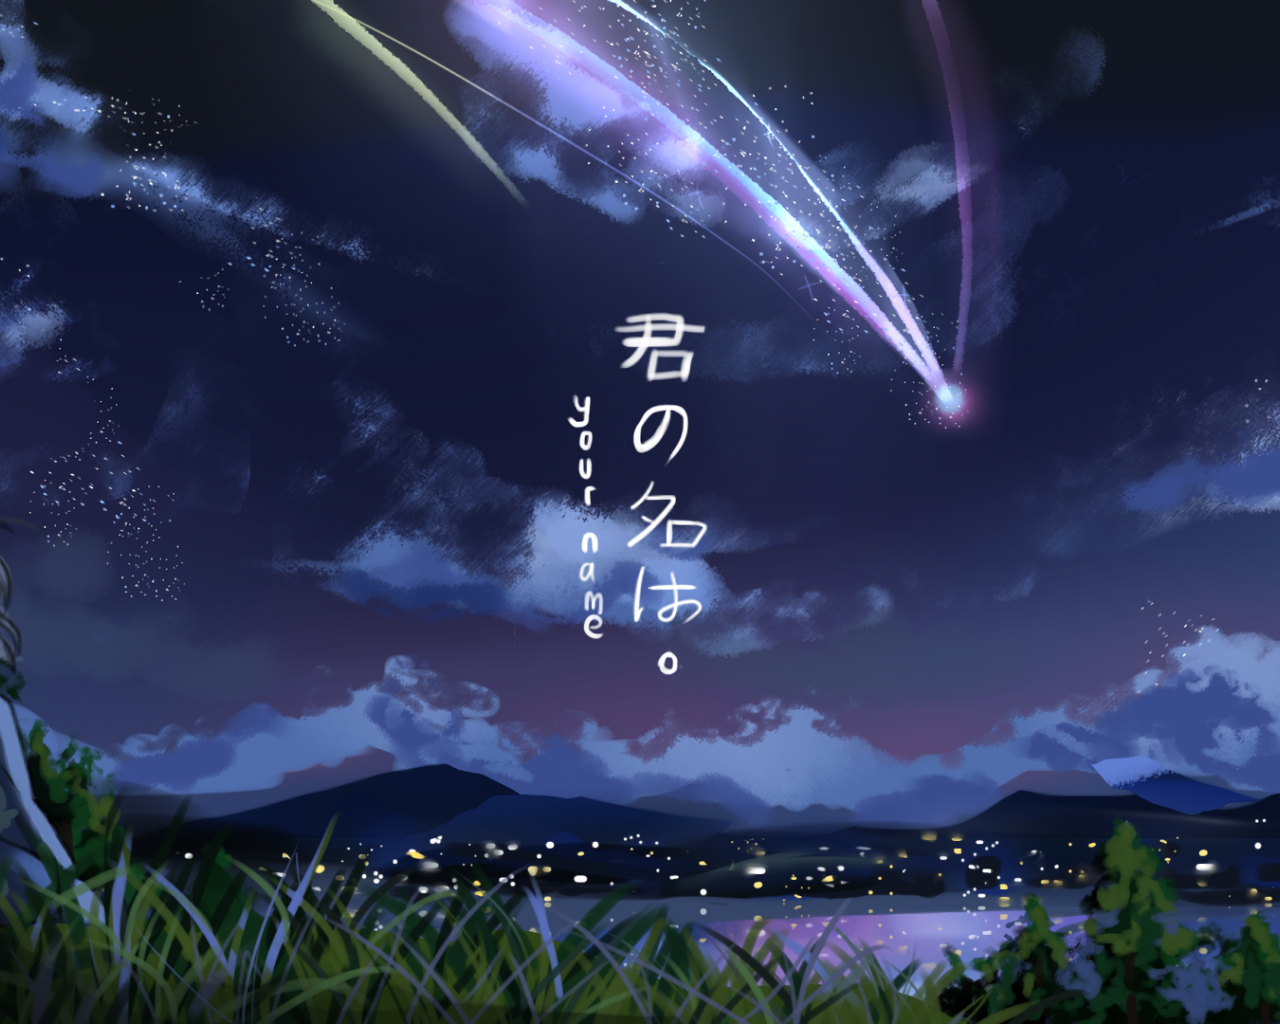 Free Download Makoto Shinkai Kimi No Na Wa Wallpaper Full Hd